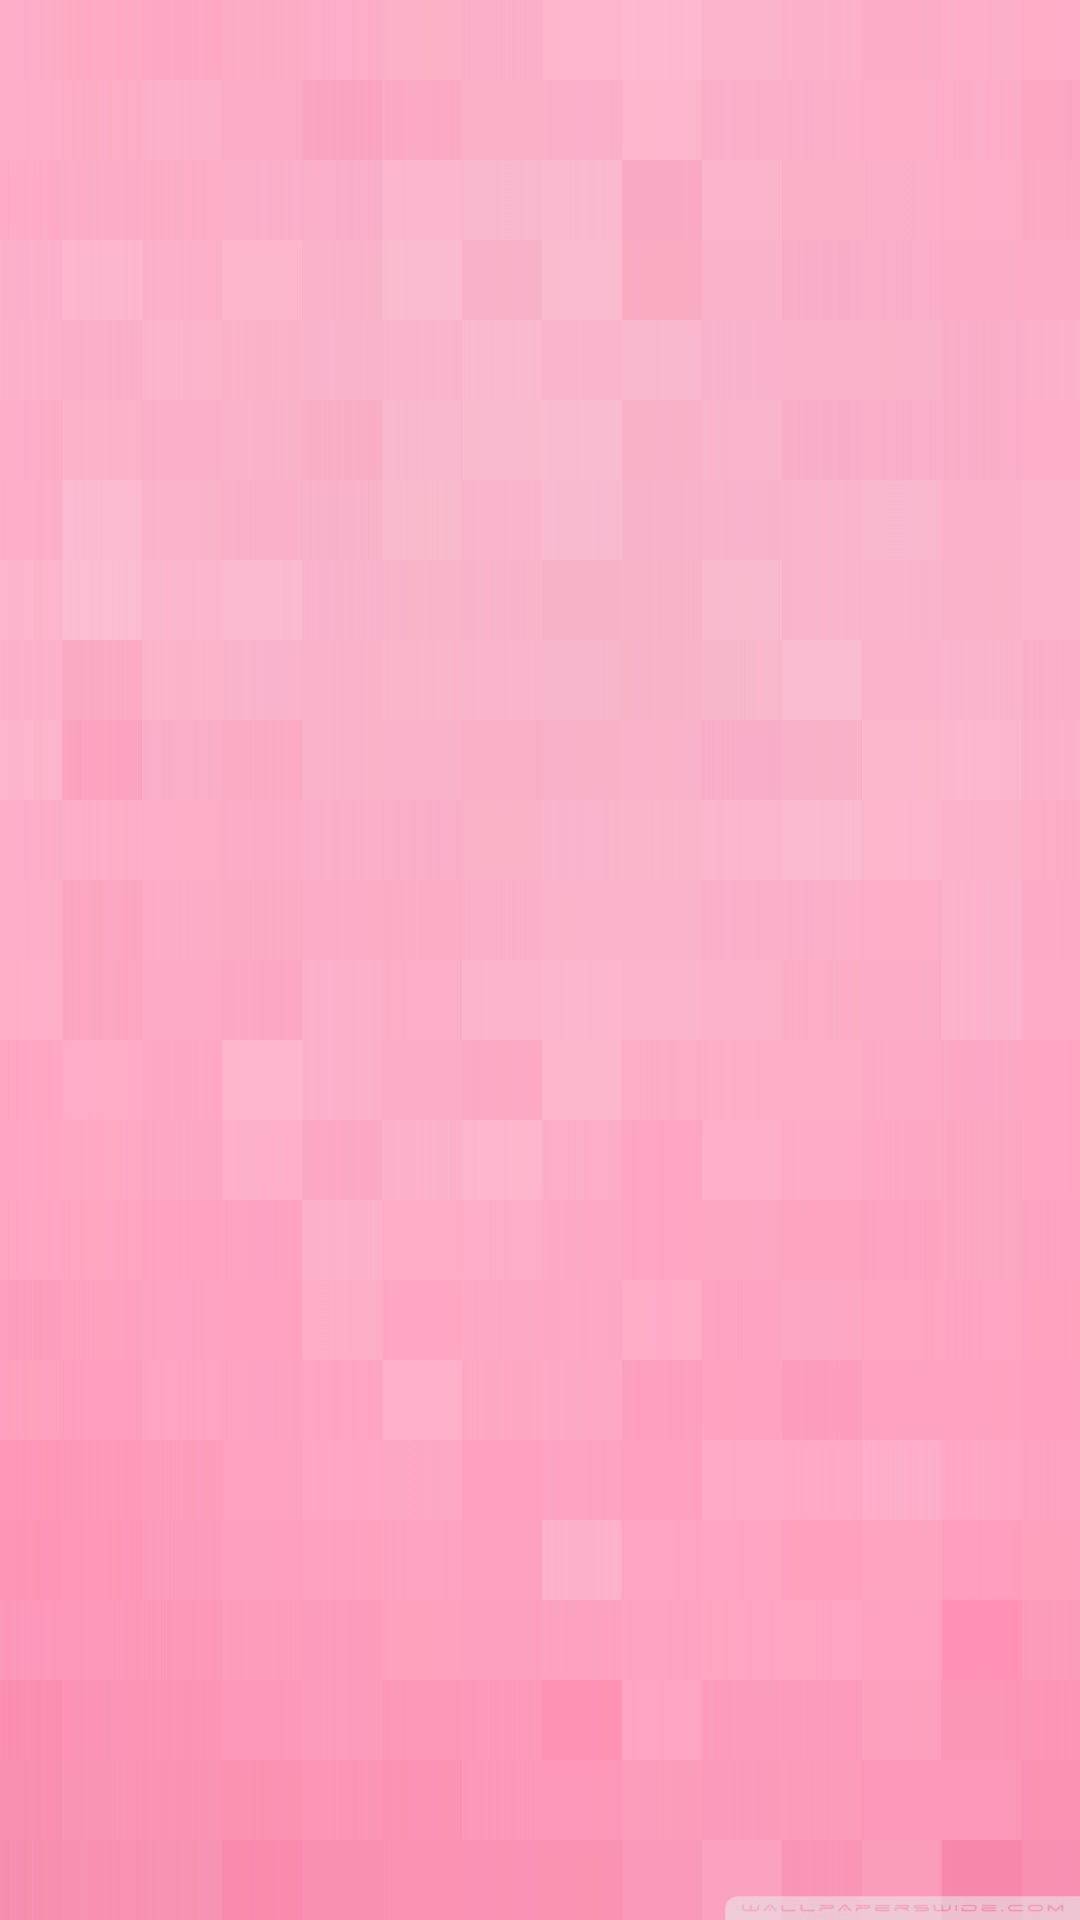 Free Pink Pixels Background phone wallpaper by jhmar